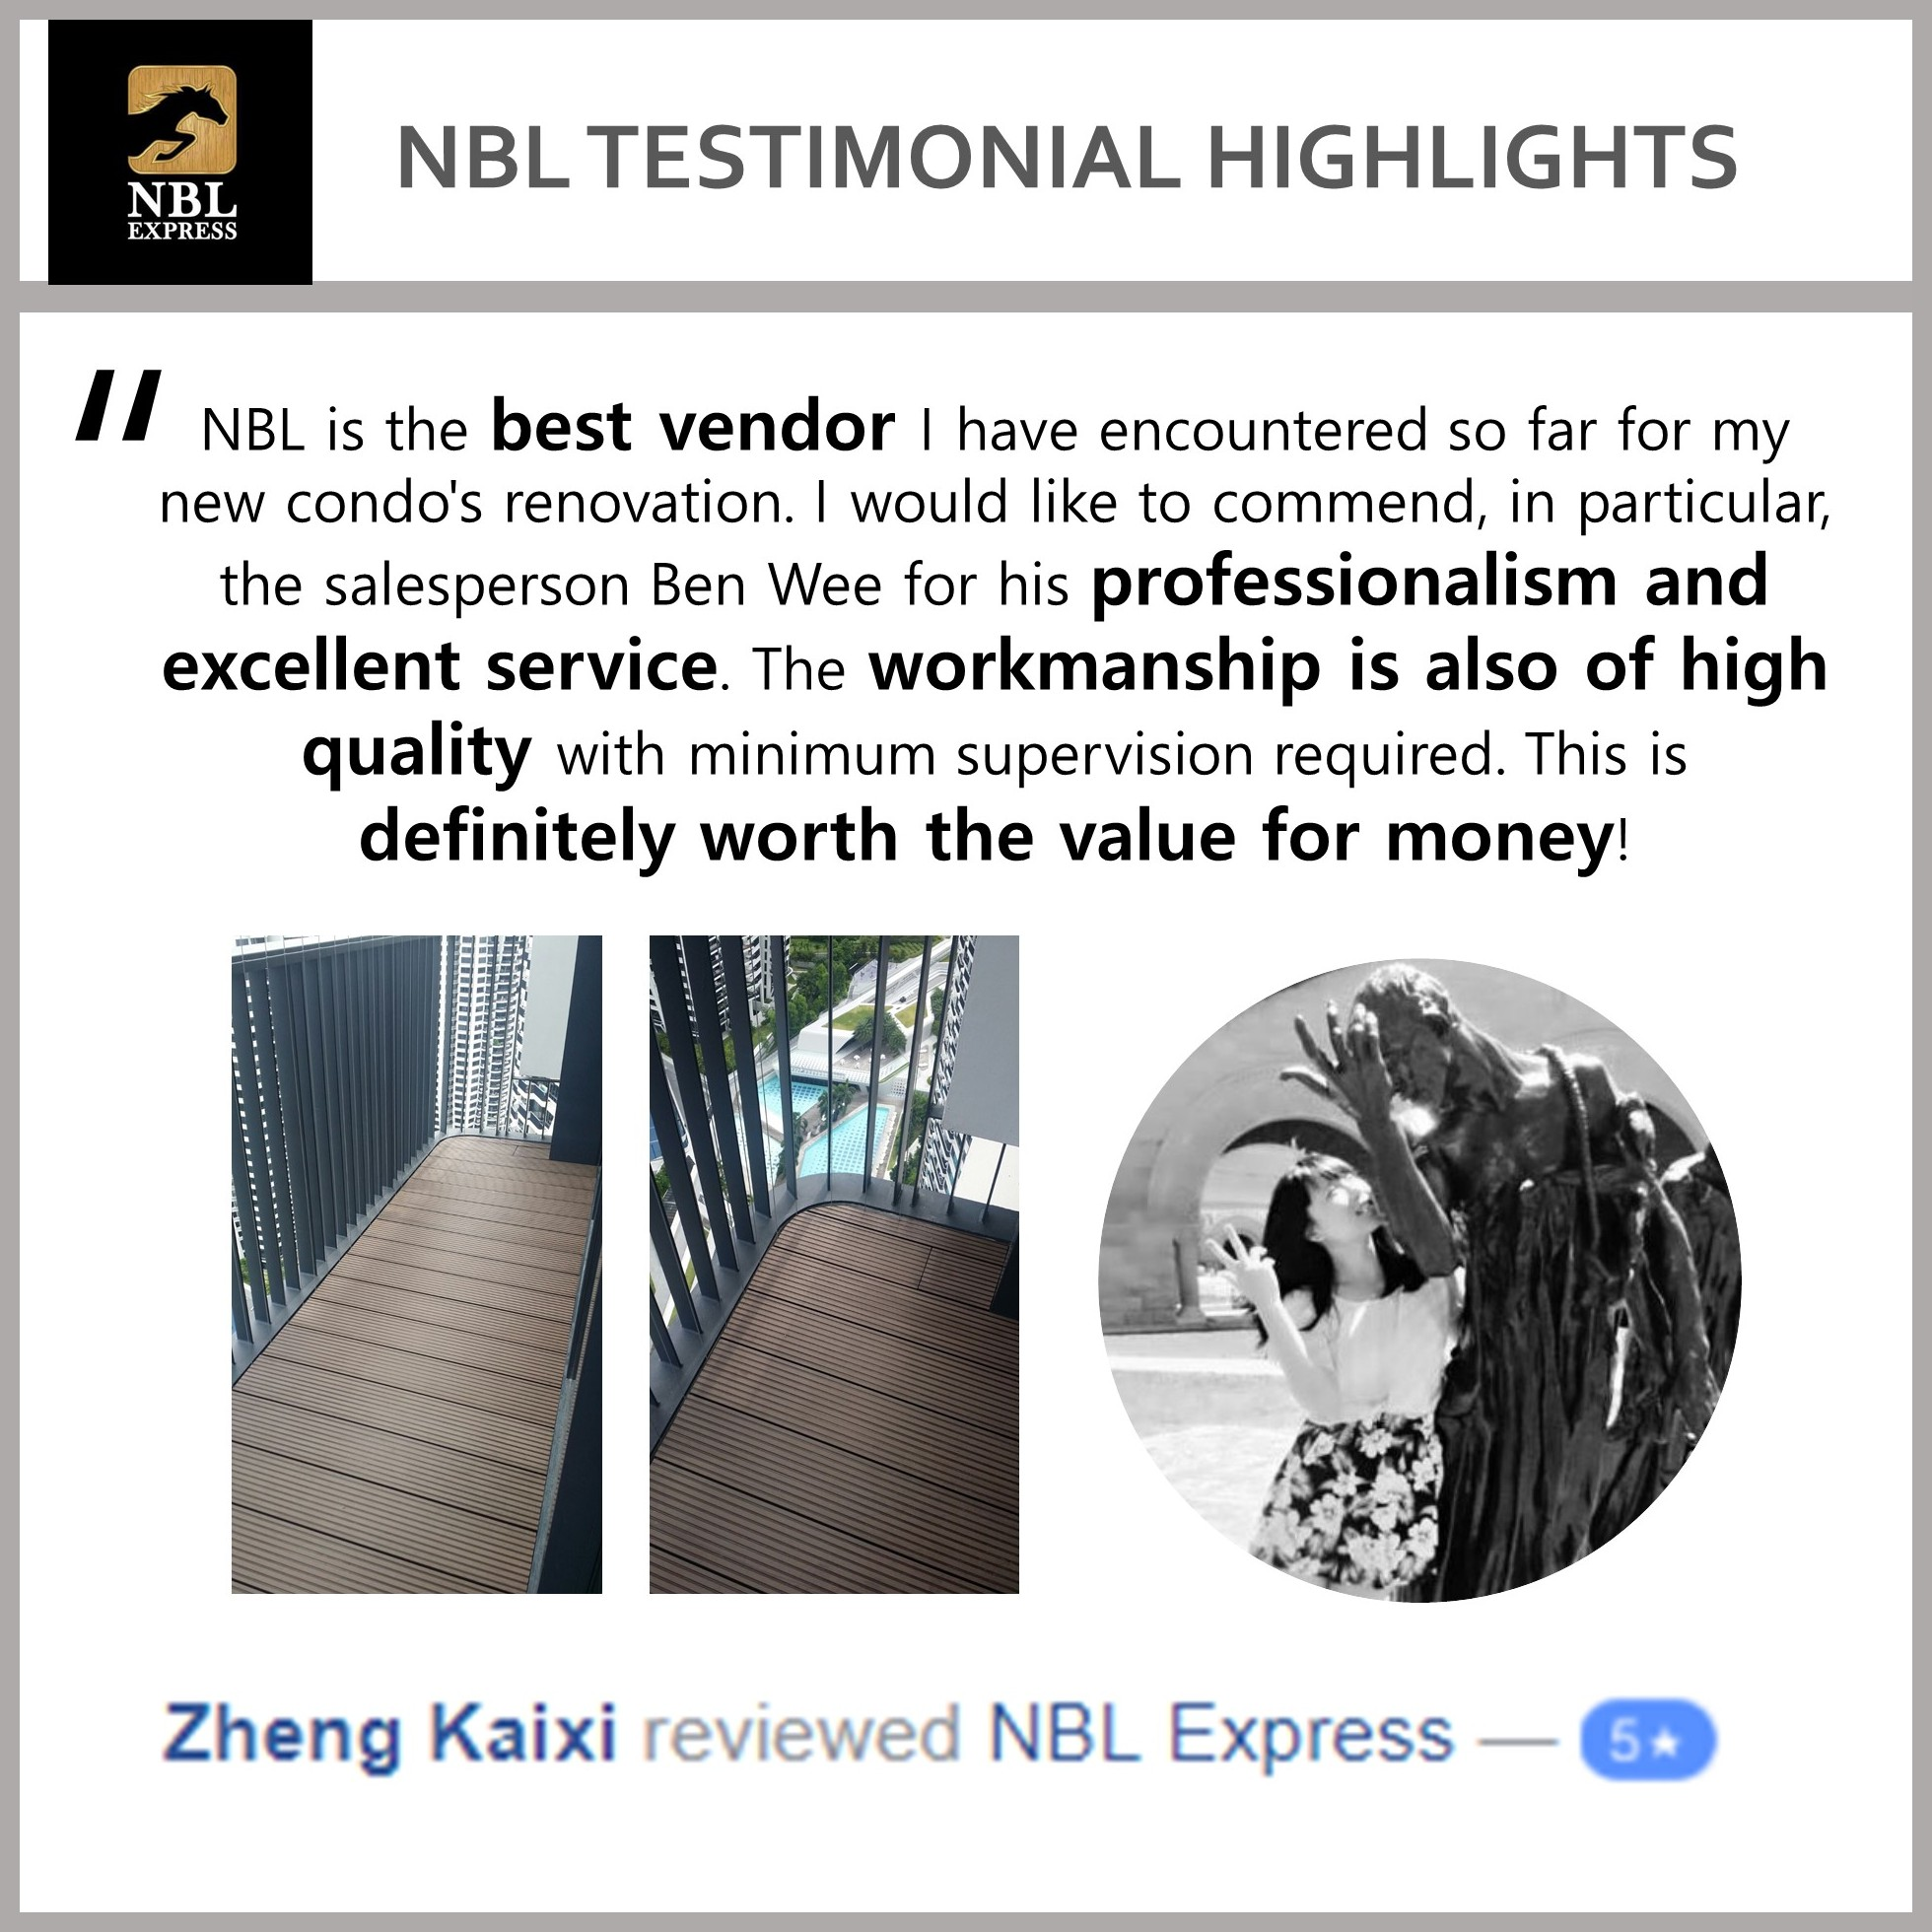 NBL Express Review Flooring Contractor Singapore (10).JPG